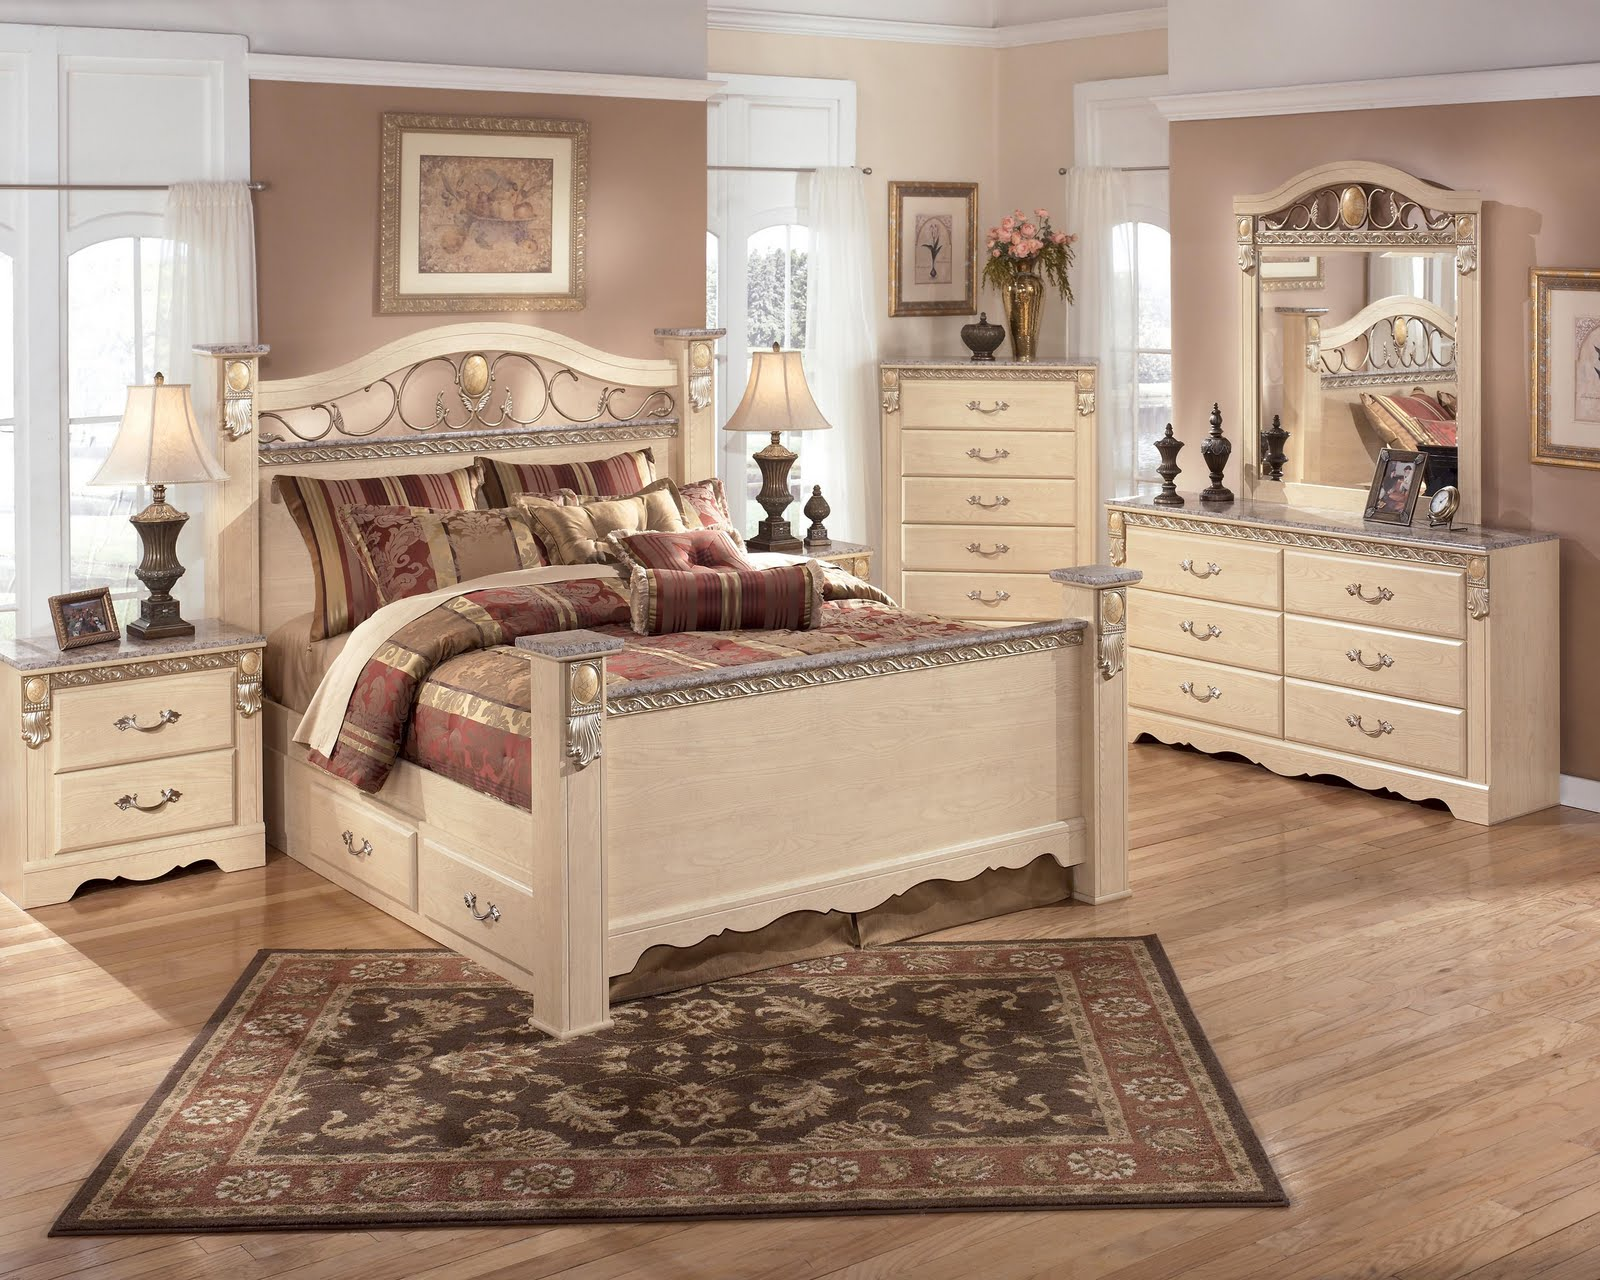 Bedroom Set American Furniture Warehouse